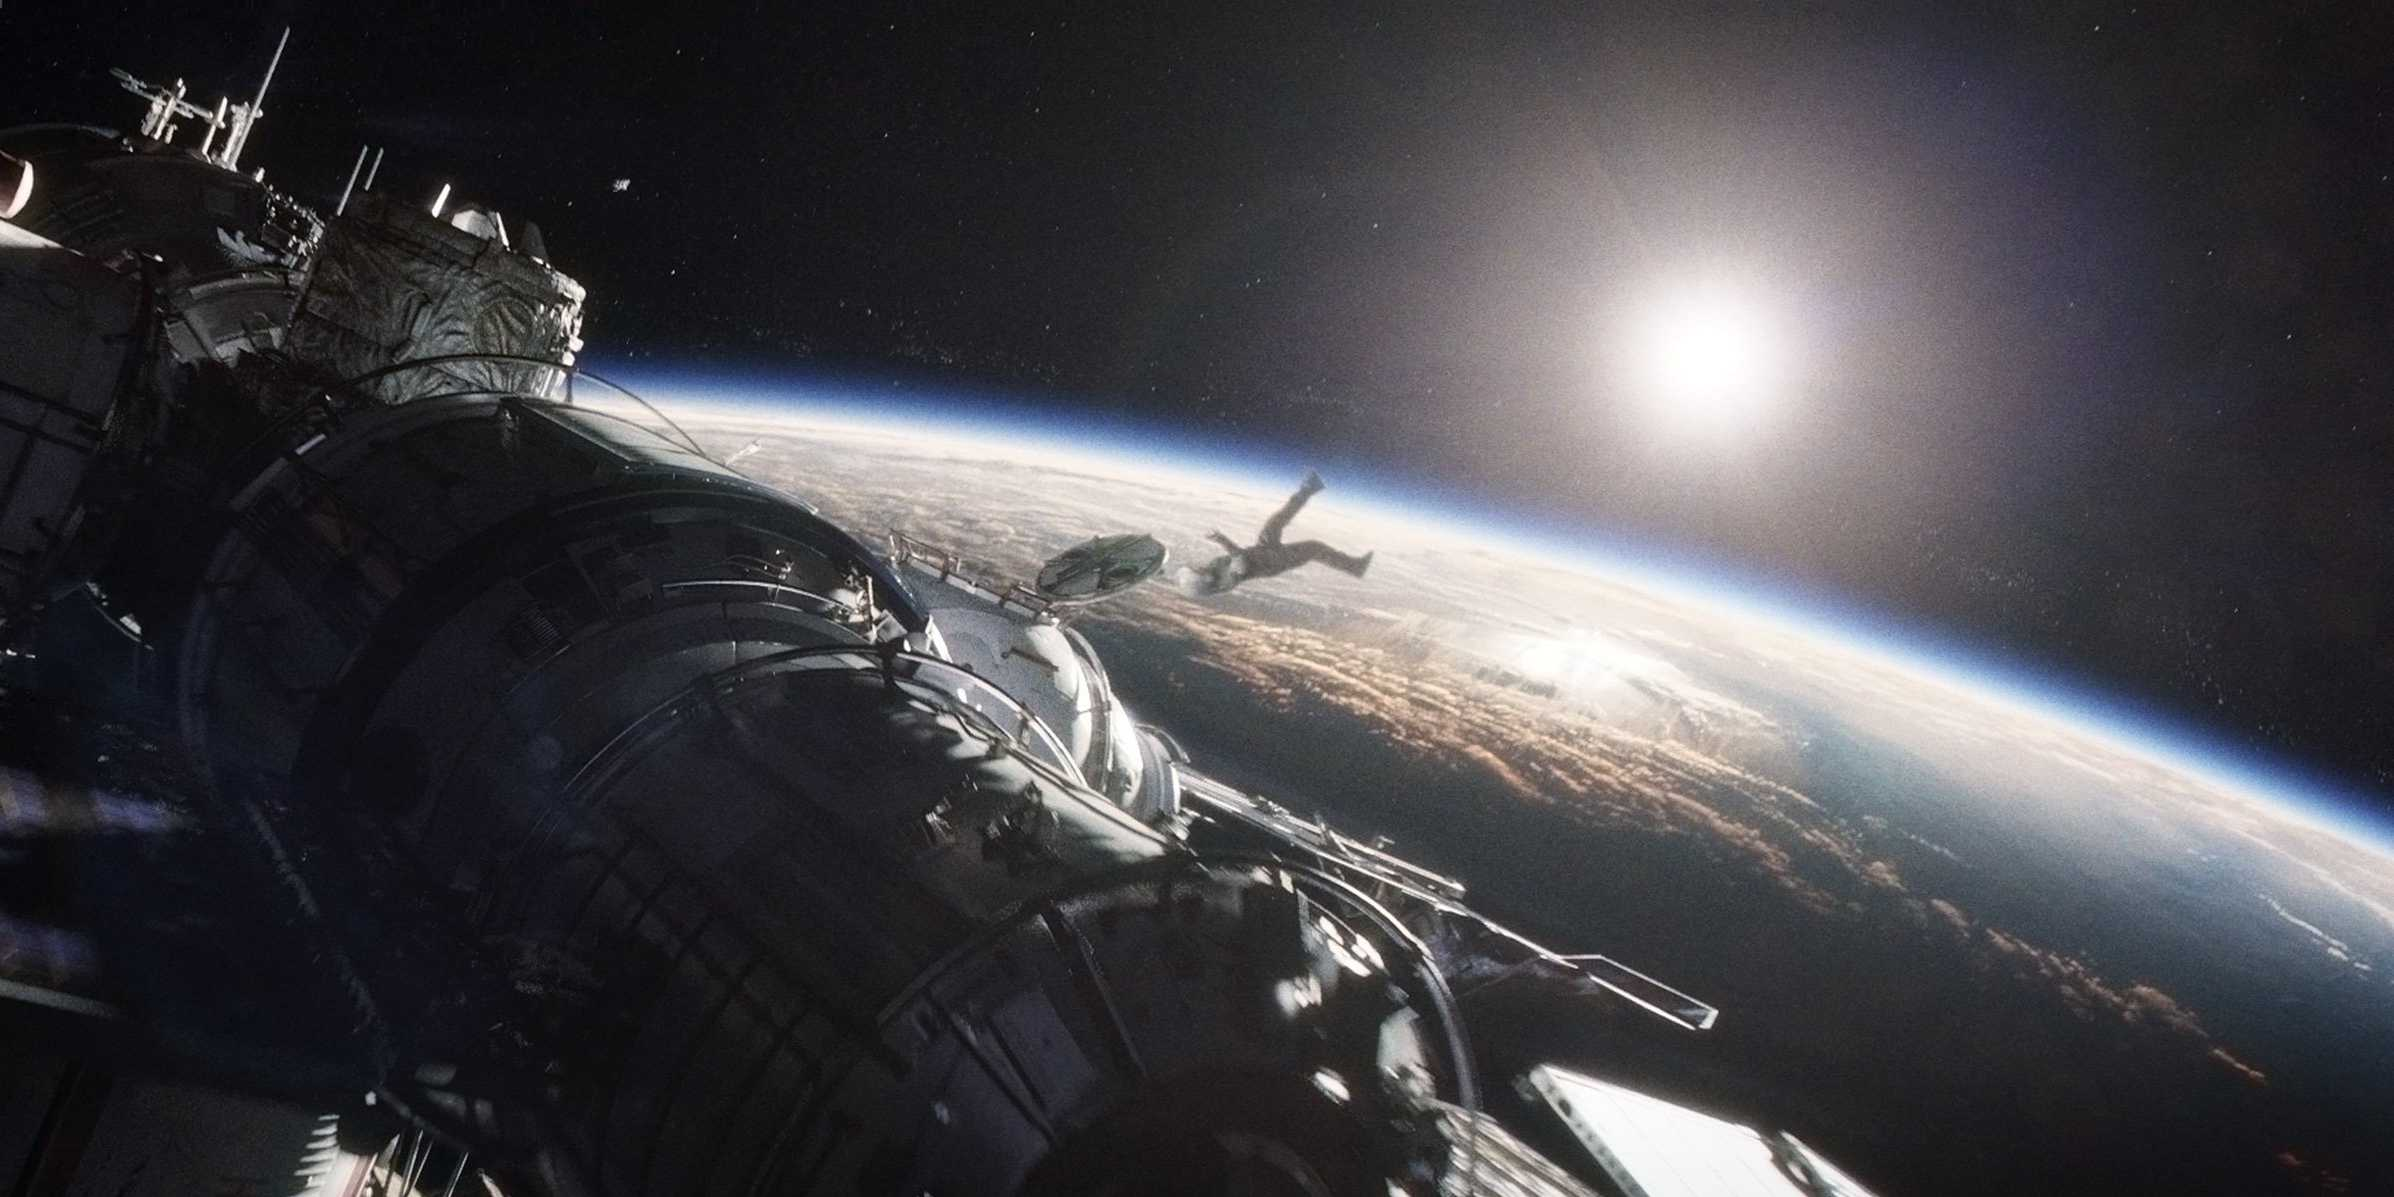 Gravity - DC FilmdomDC Filmdom | Entertainment reviews by ...